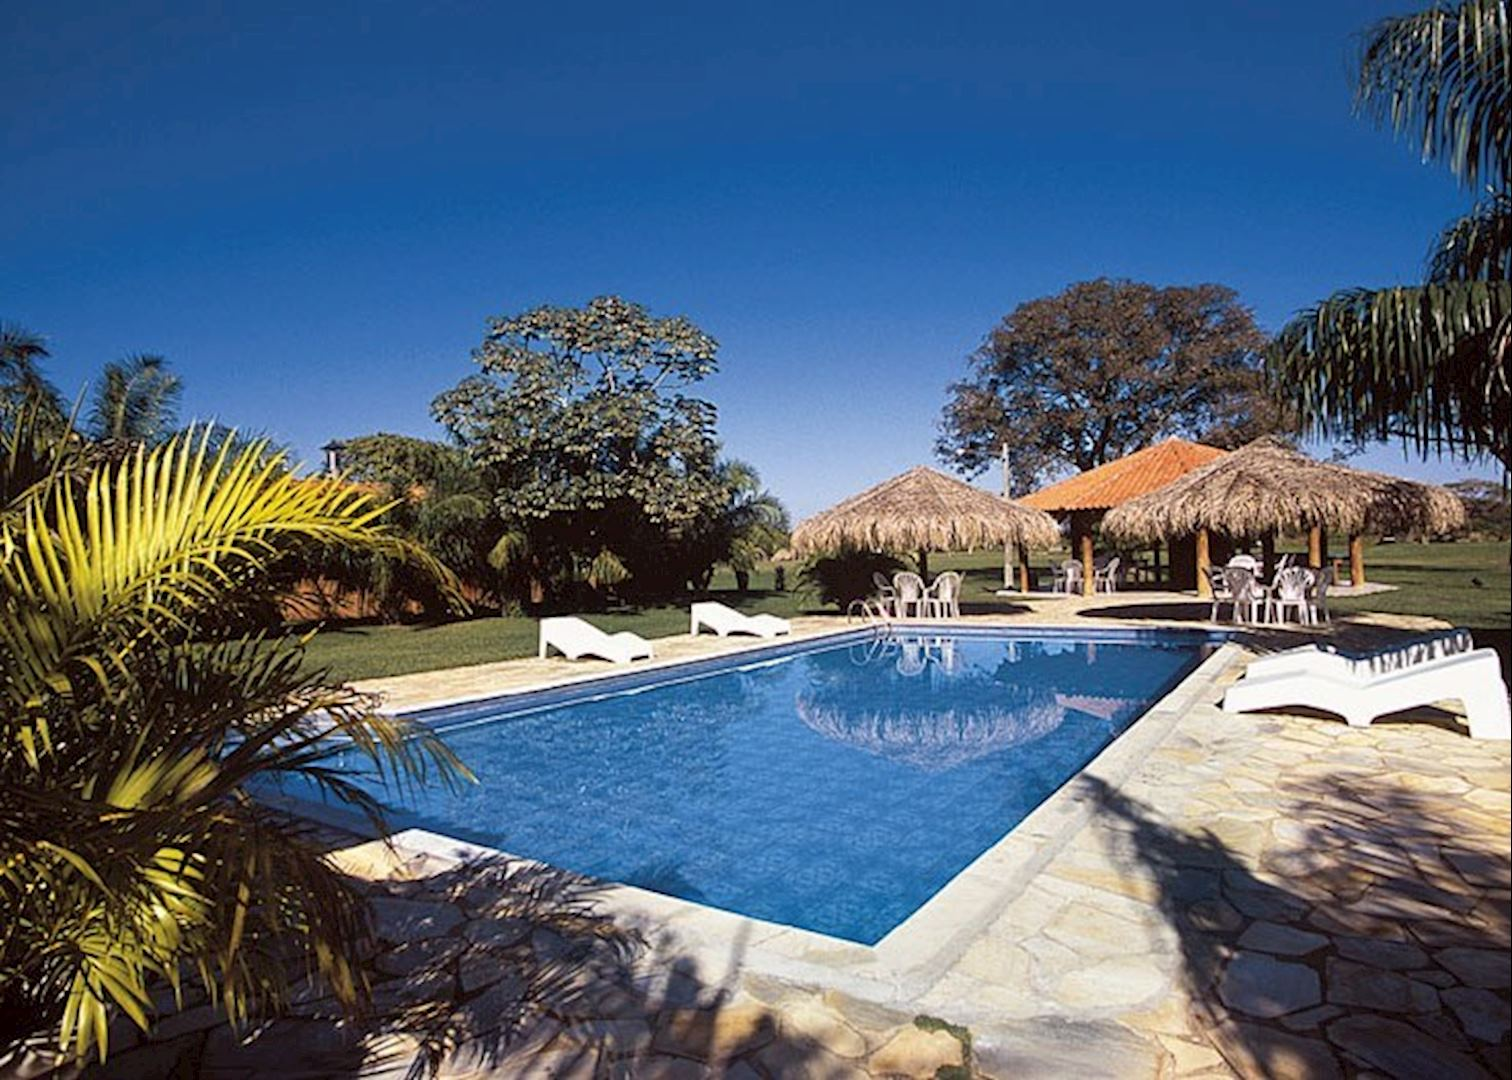 Hotel Porto Jofre Hotels In The Pantanal Audley Travel